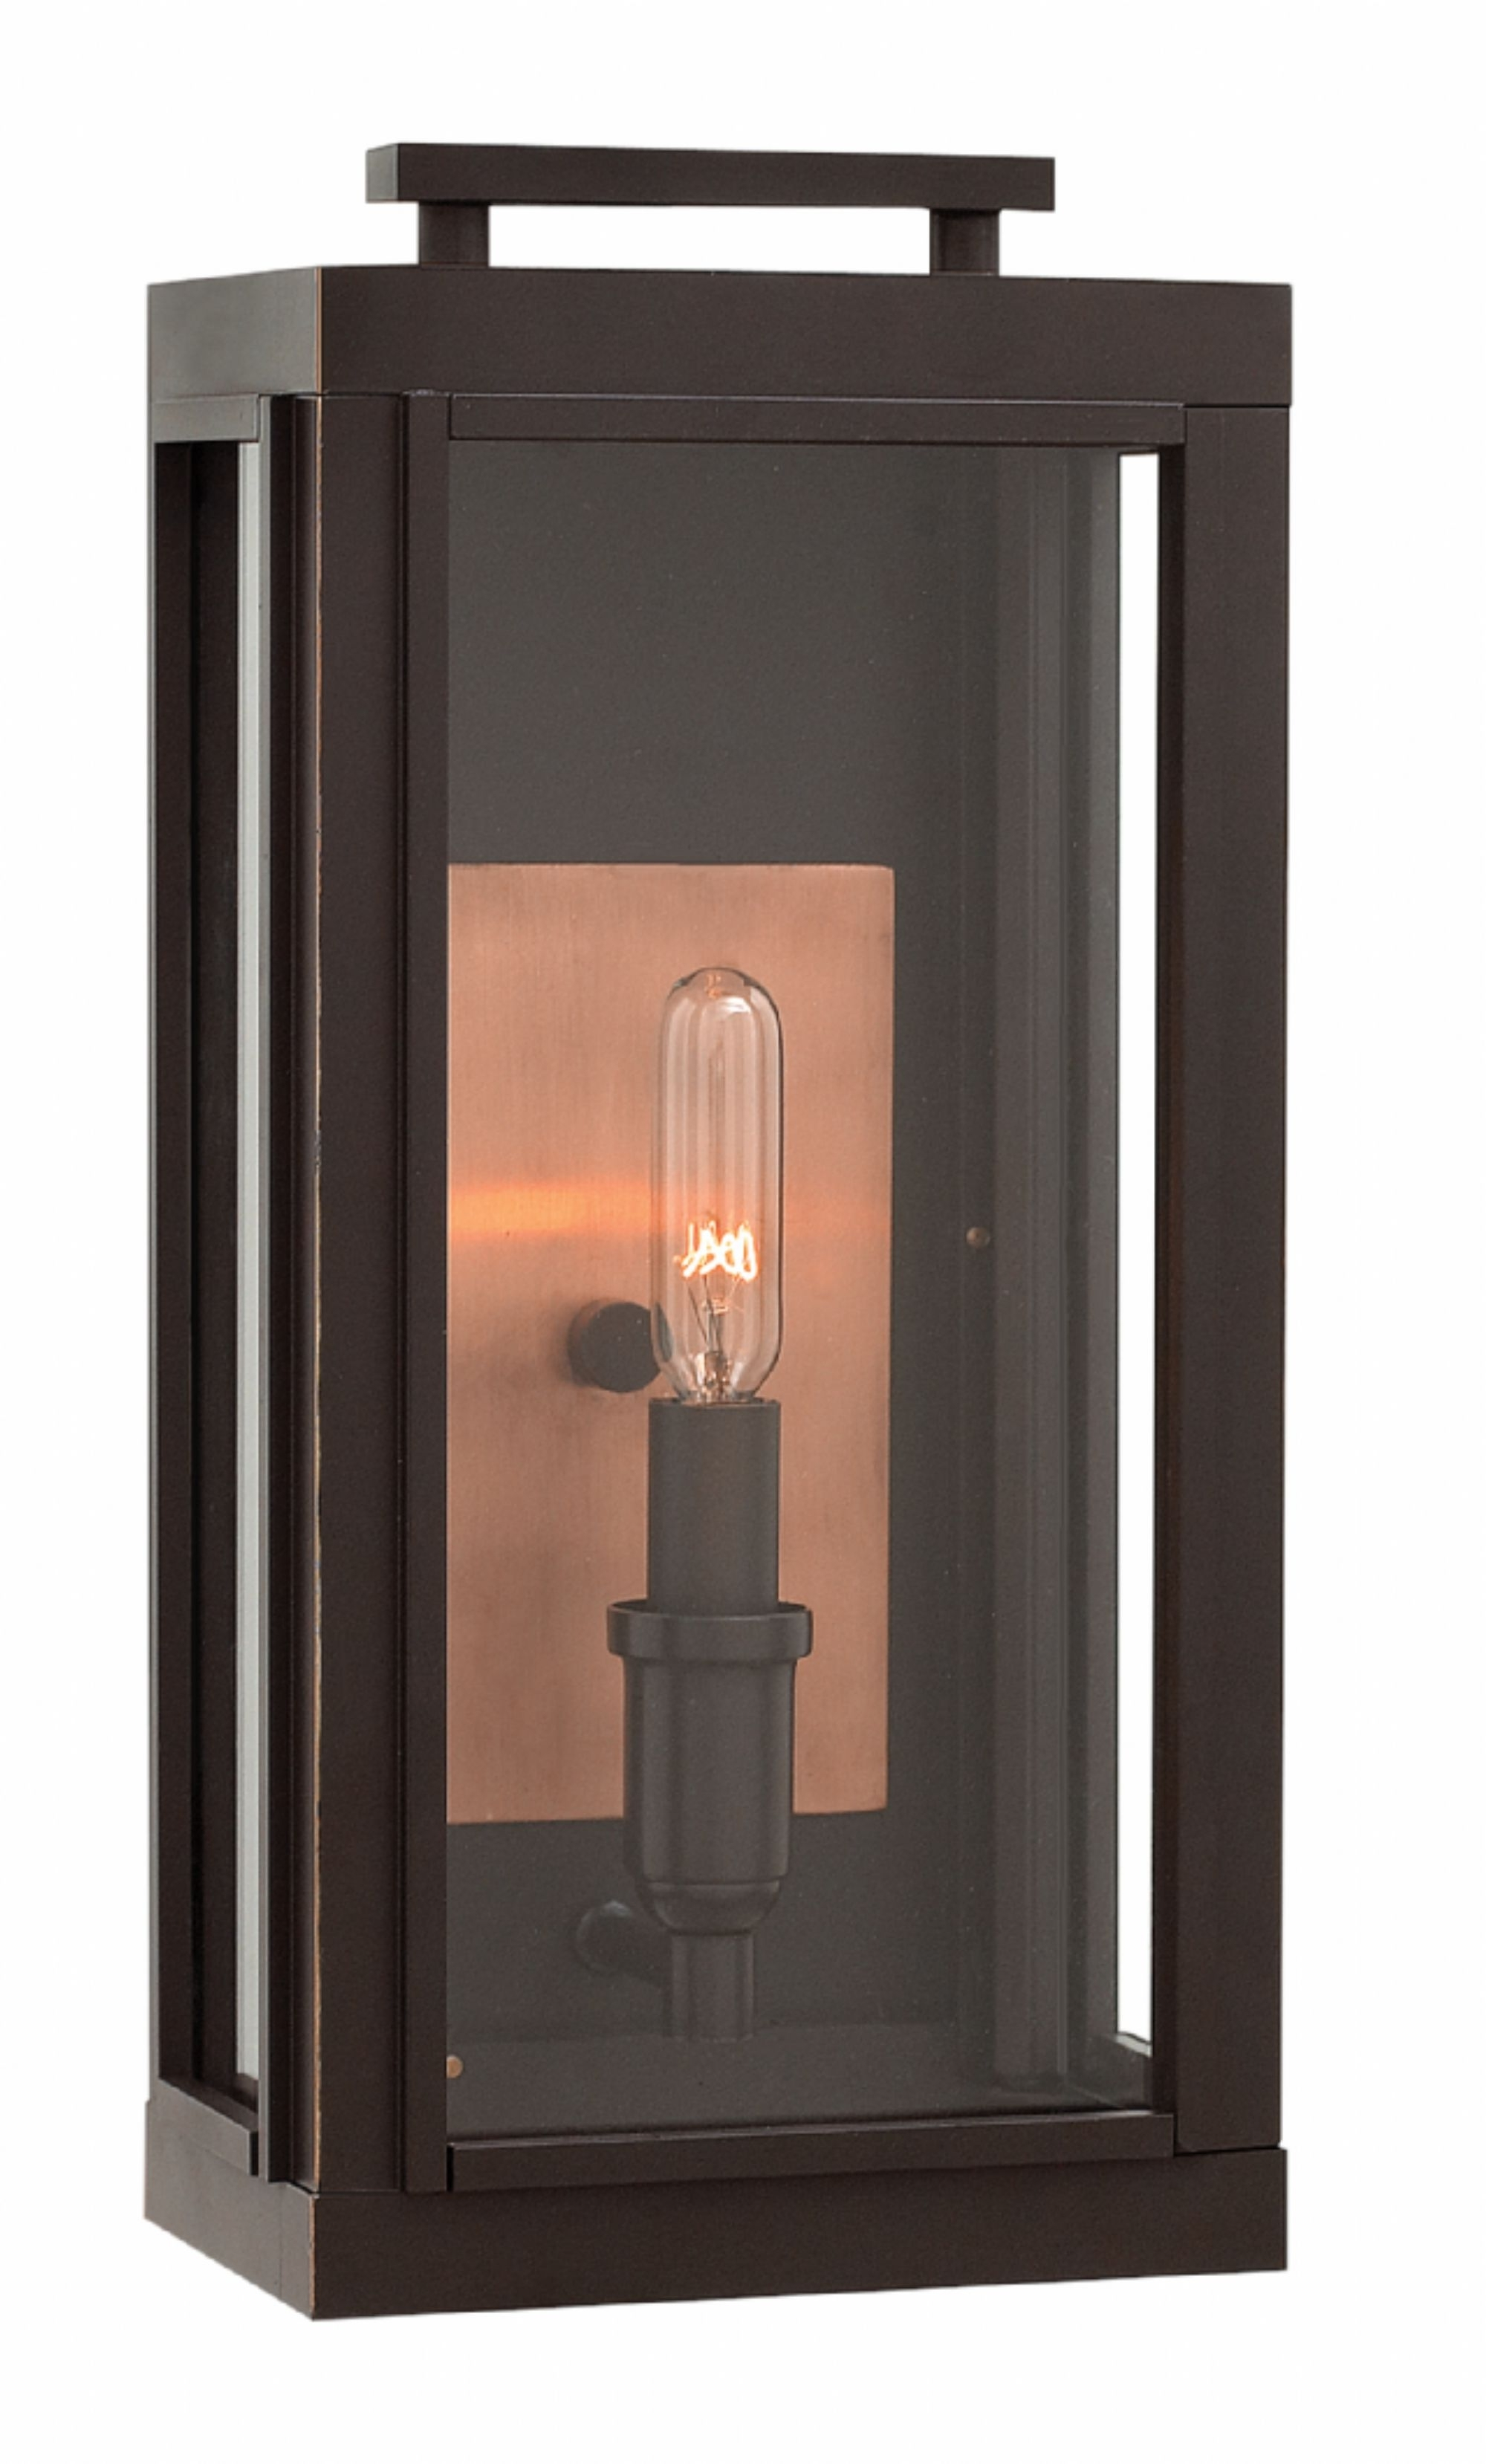 Oil Rubbed Bronze Sutcliffe > Exterior Wall Mount With Most Current Beach Outdoor Wall Lighting (View 14 of 20)